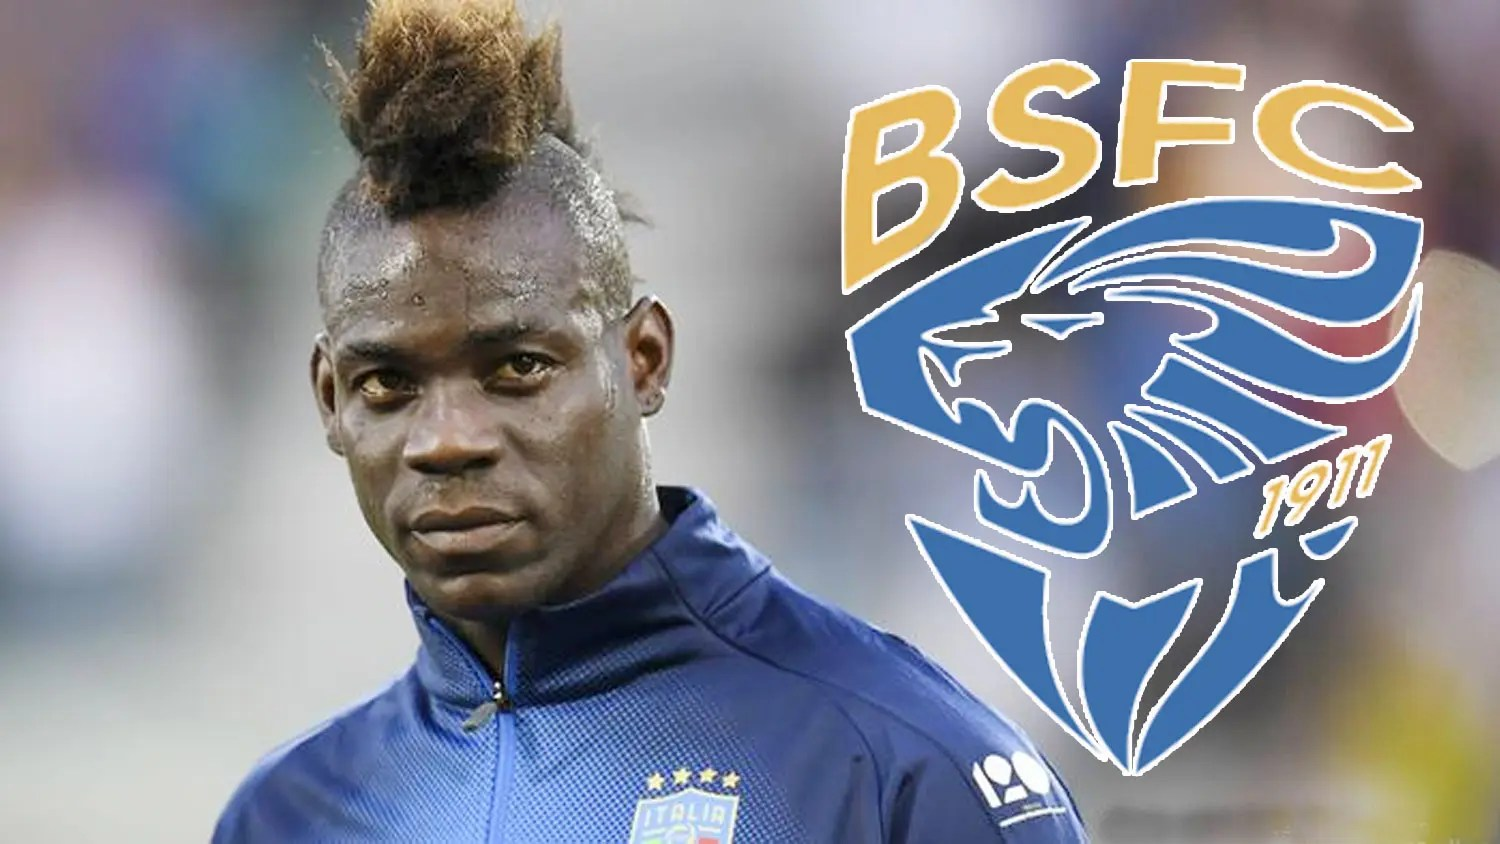 Mario Balotelli joins hometown club Brescia on a free